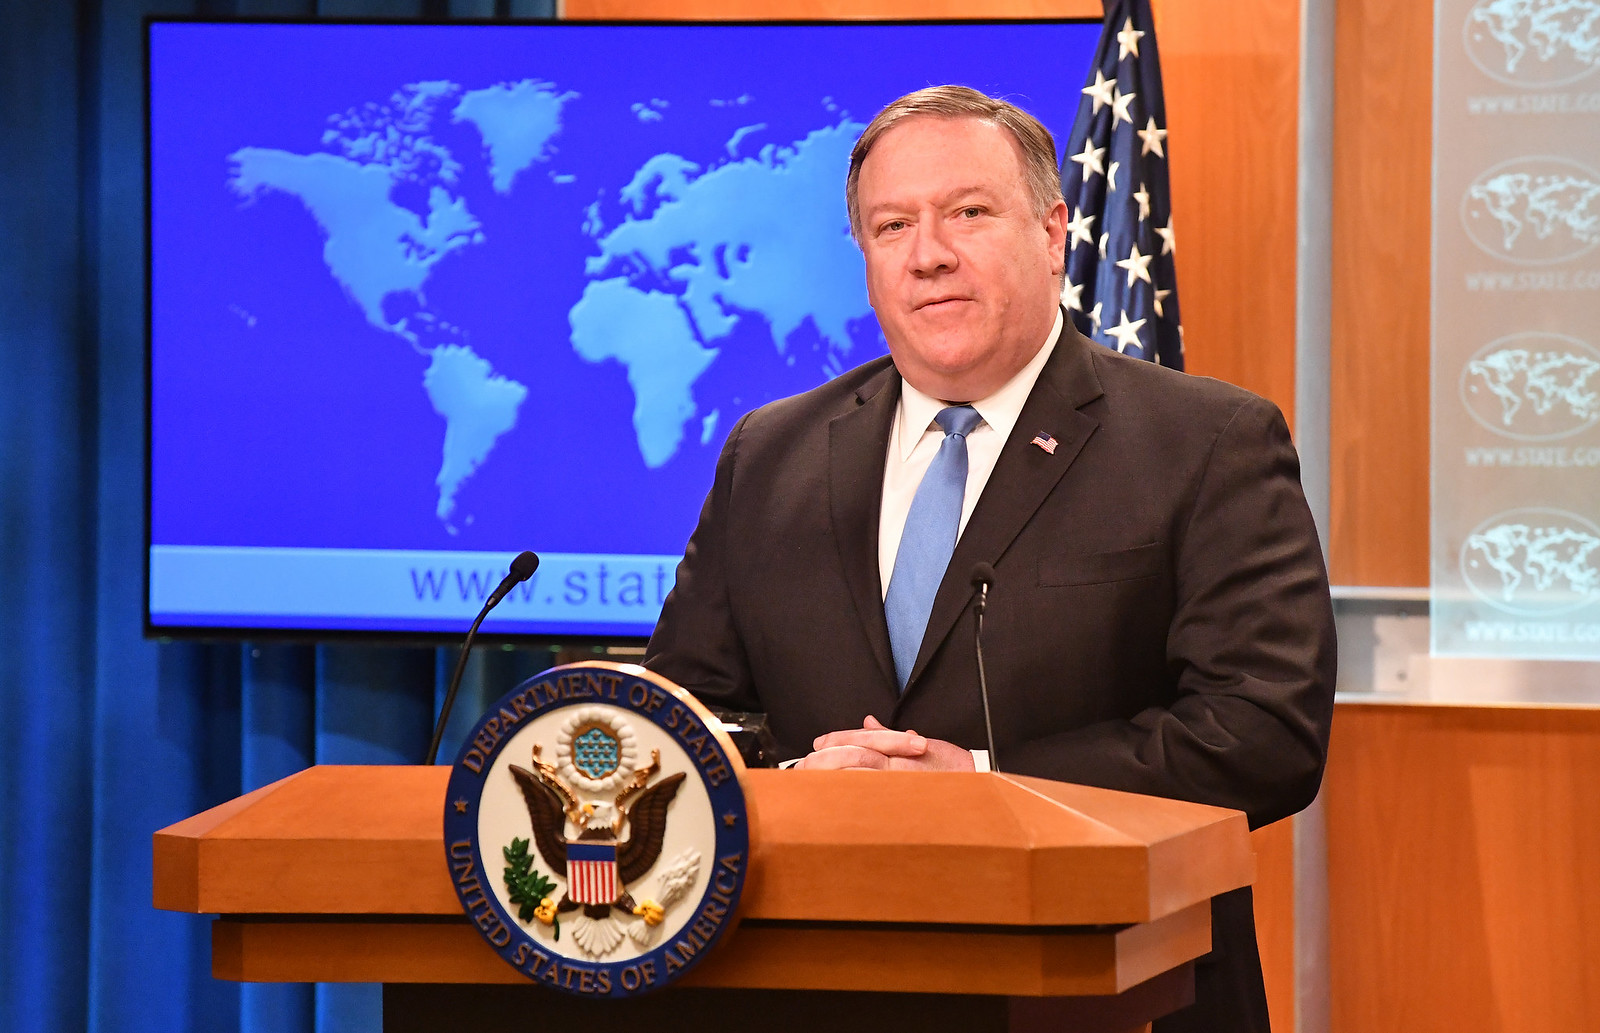 Secretary of State Statement On Covid-19 | U.S. Embassy in Niger